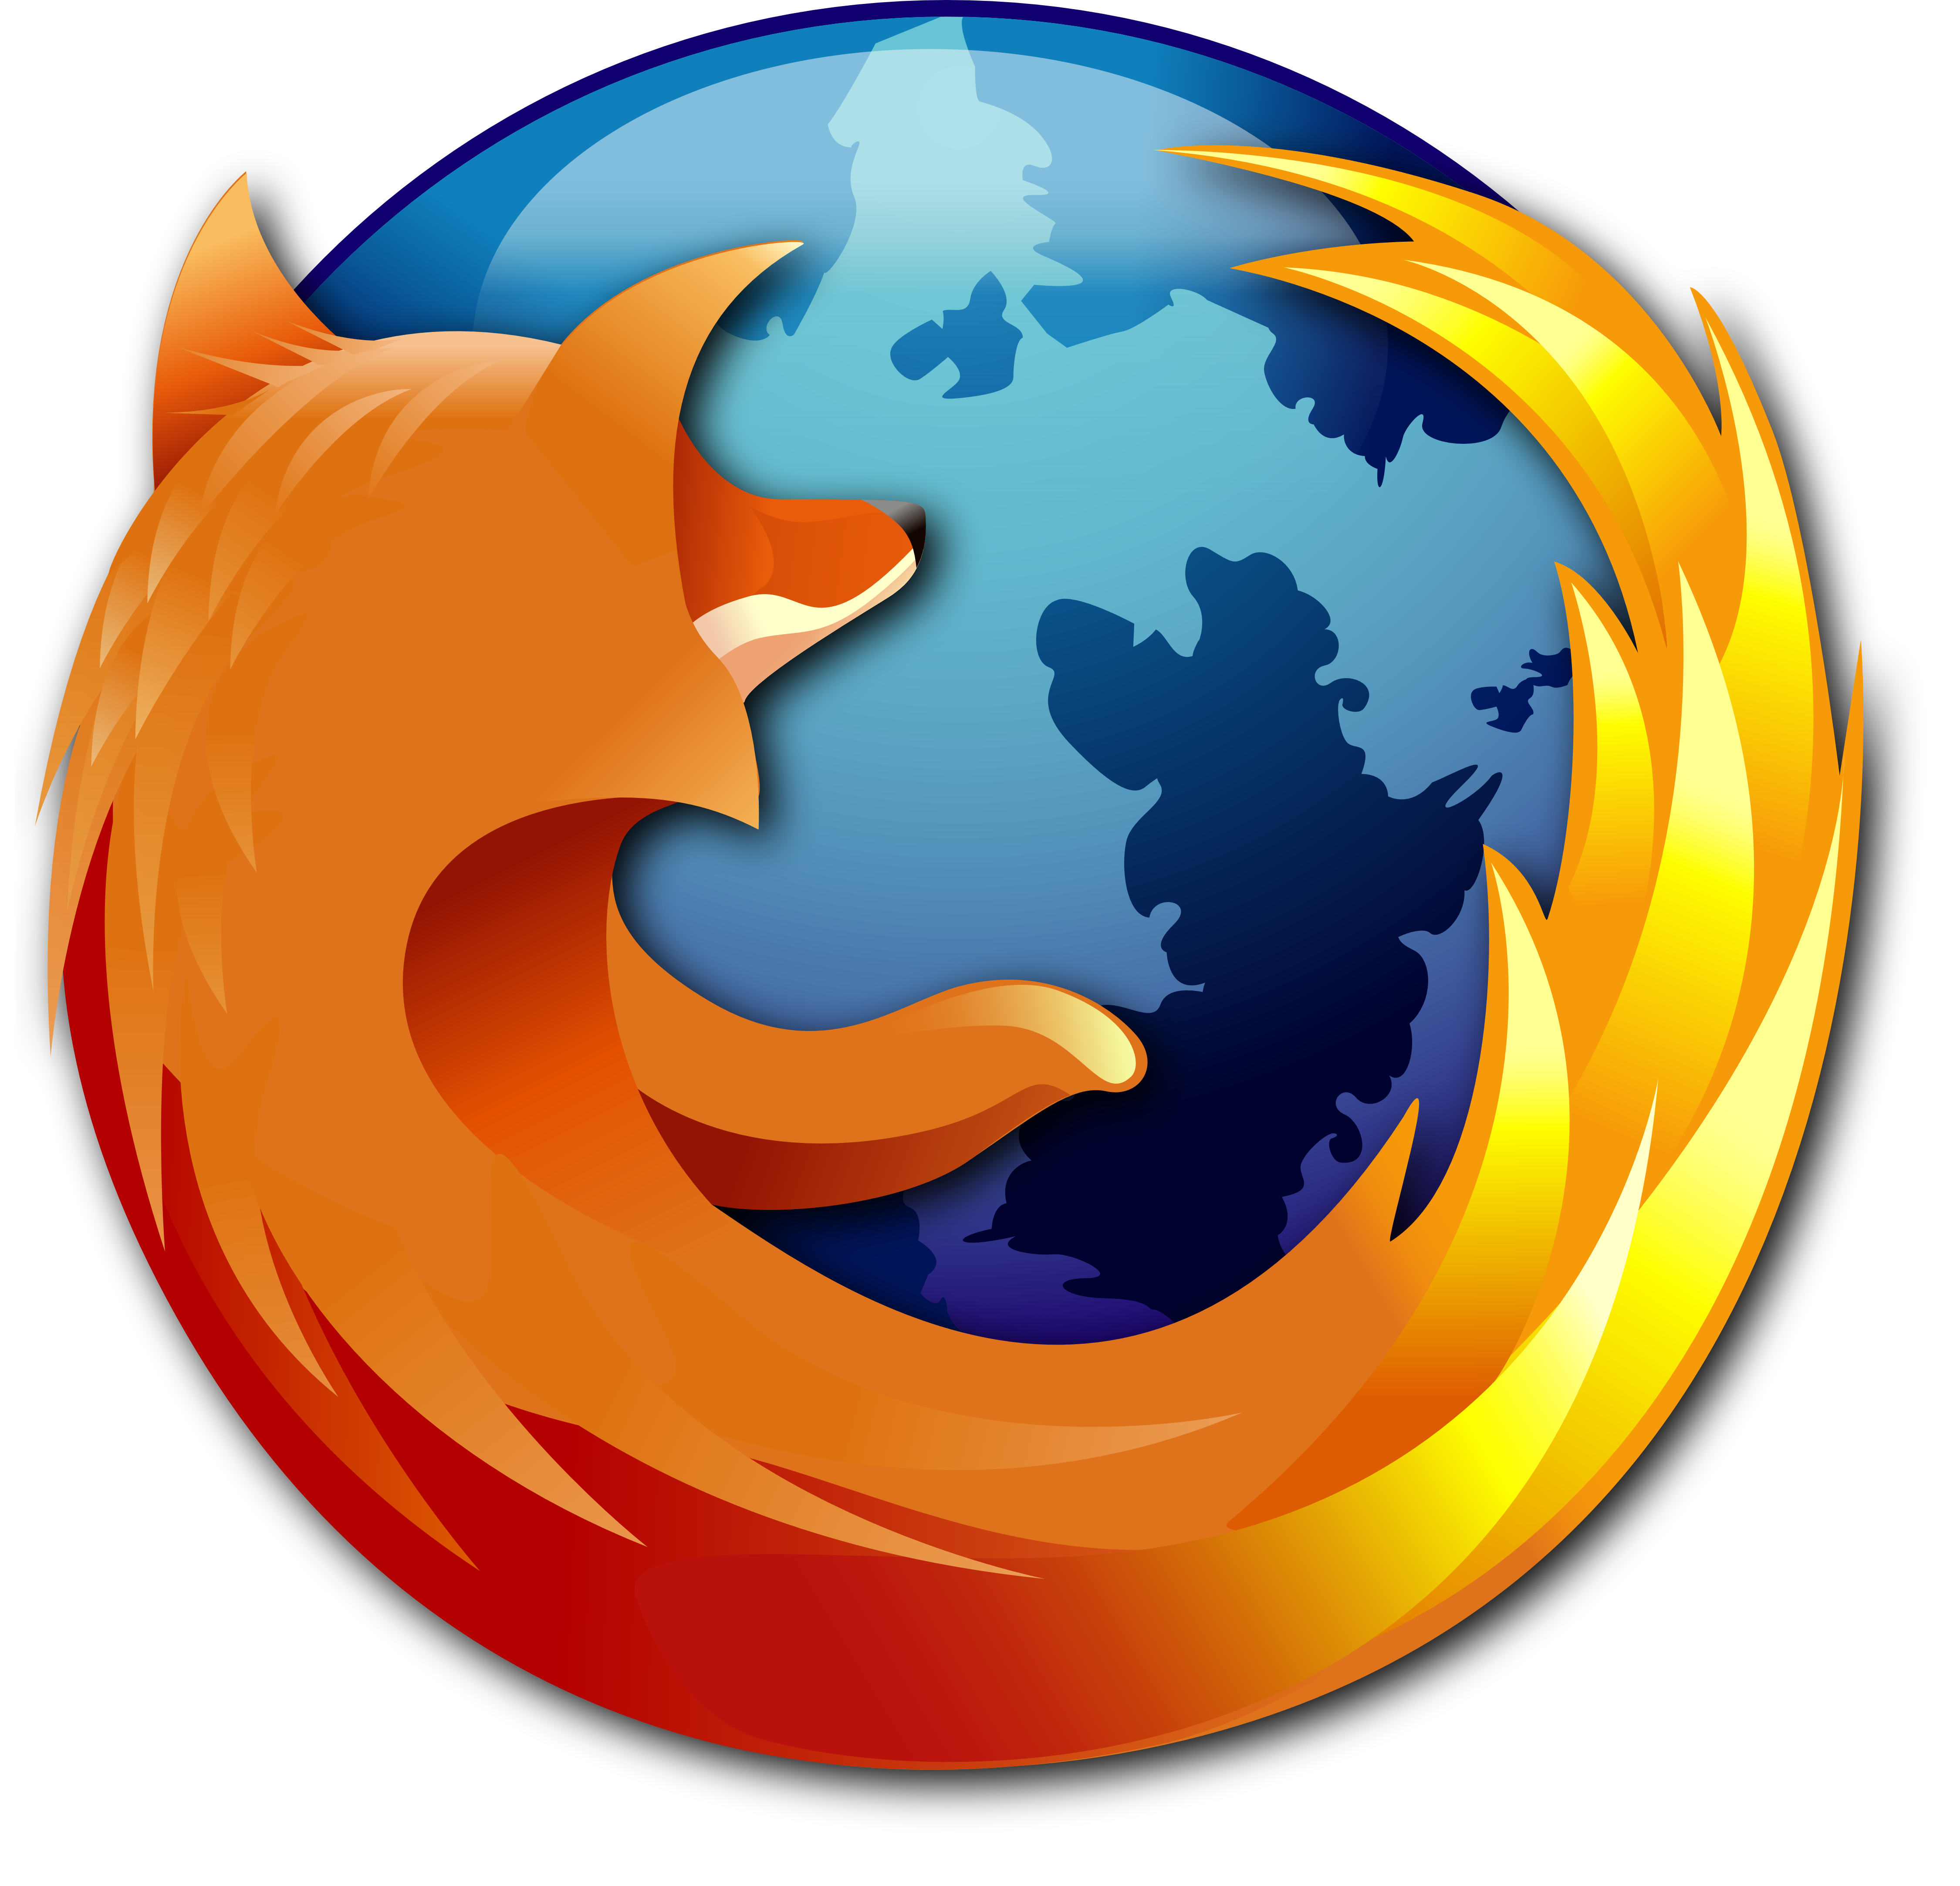 Jon hicks firefox logo. Youtube clipart zelda